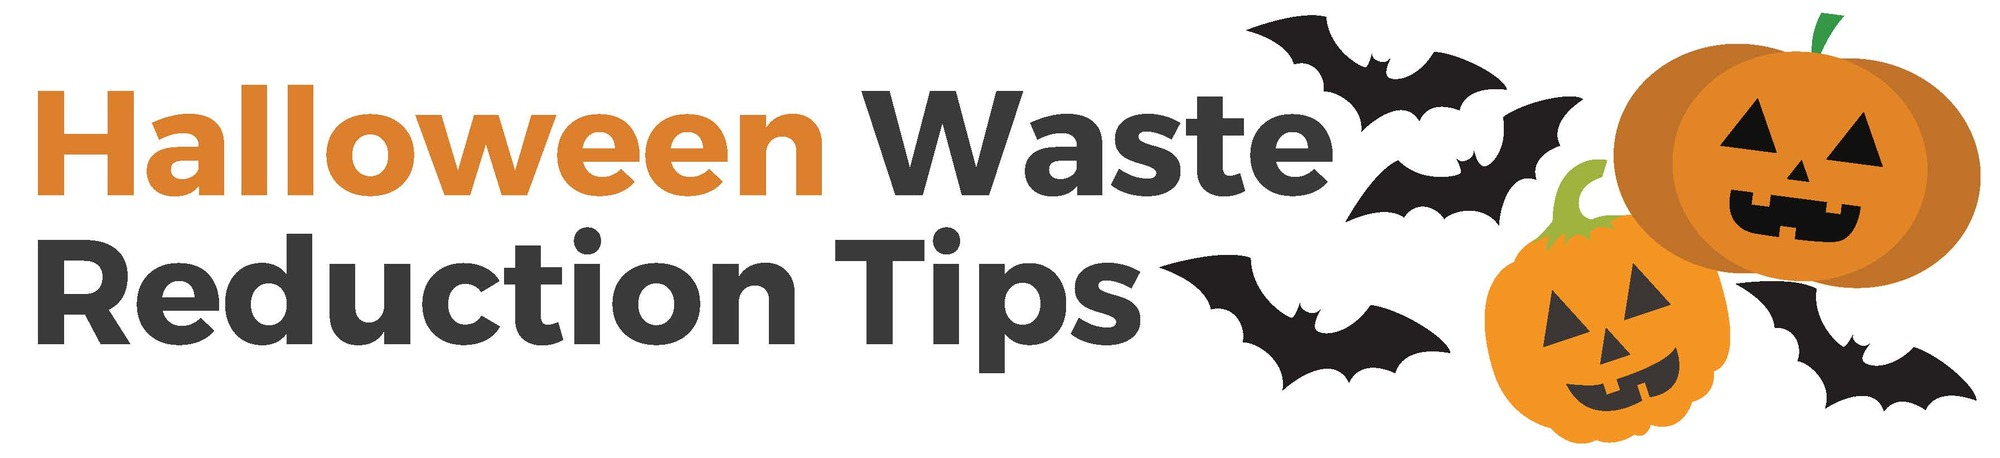 A graphic that says Halloween Waste Reduction Tips and shows Jack O'Lanterns.